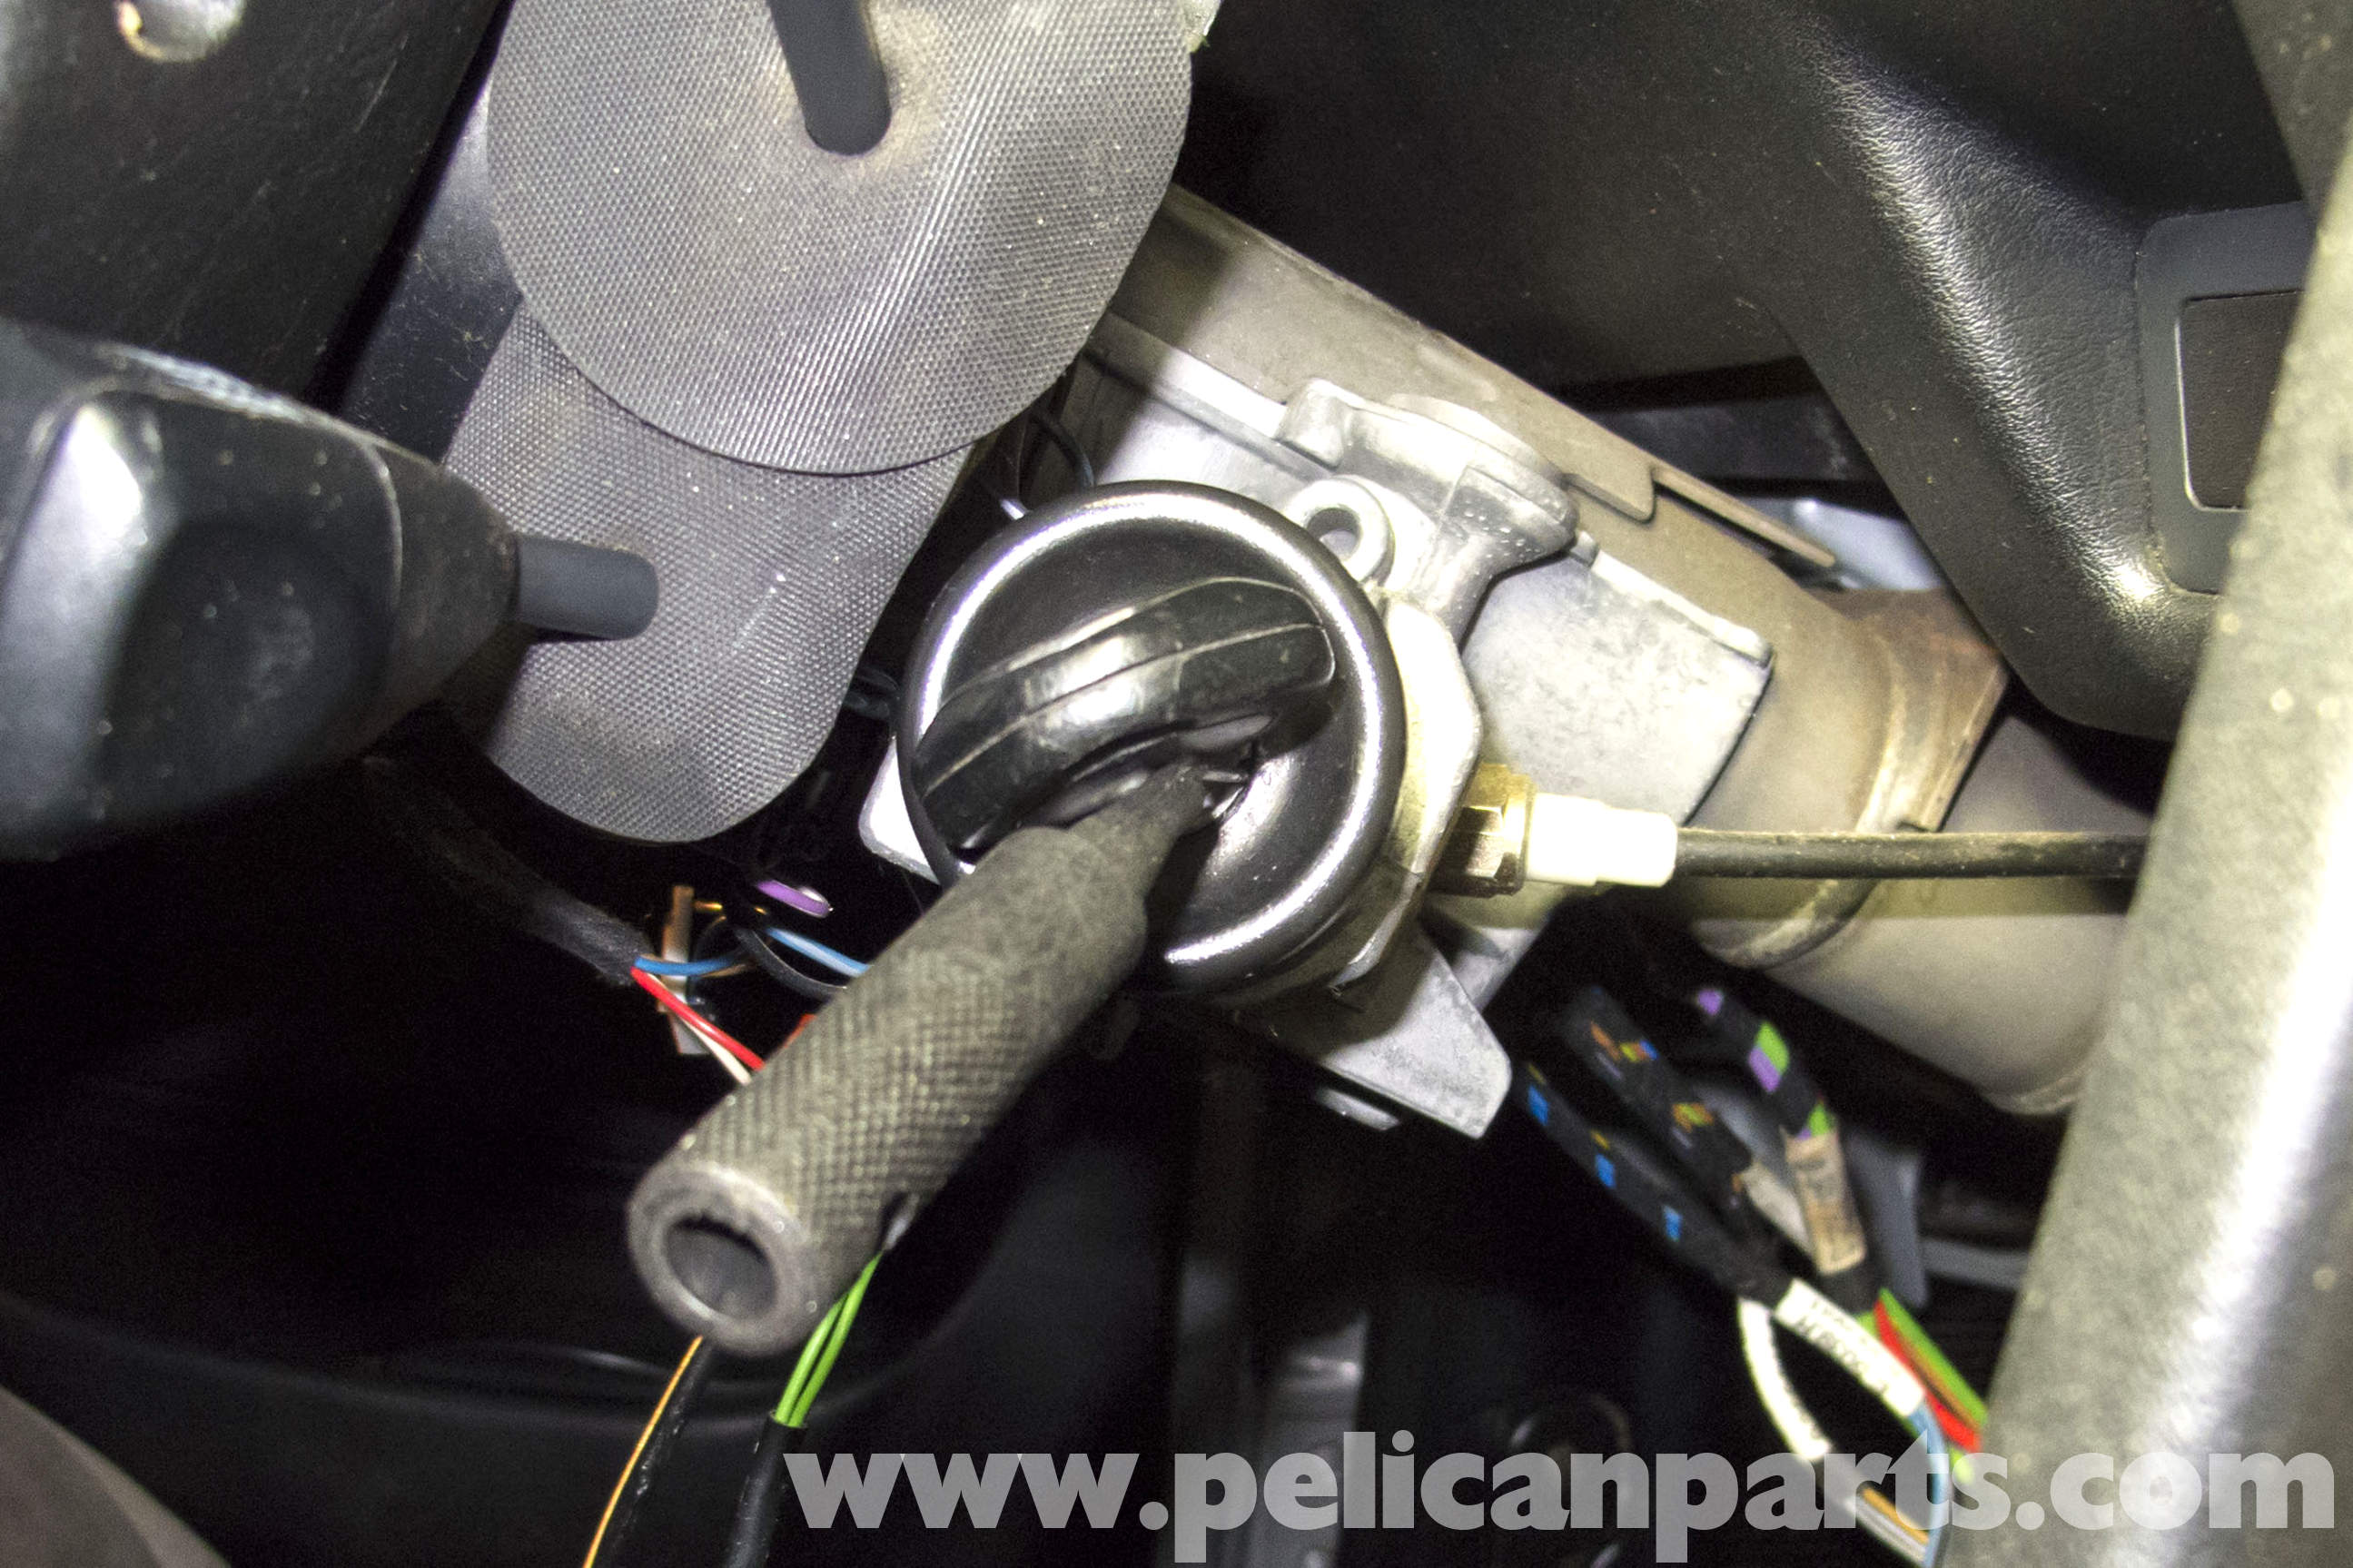 Details About 06 Bmw 325i 323i Ignition Switch Lock Housing With Key